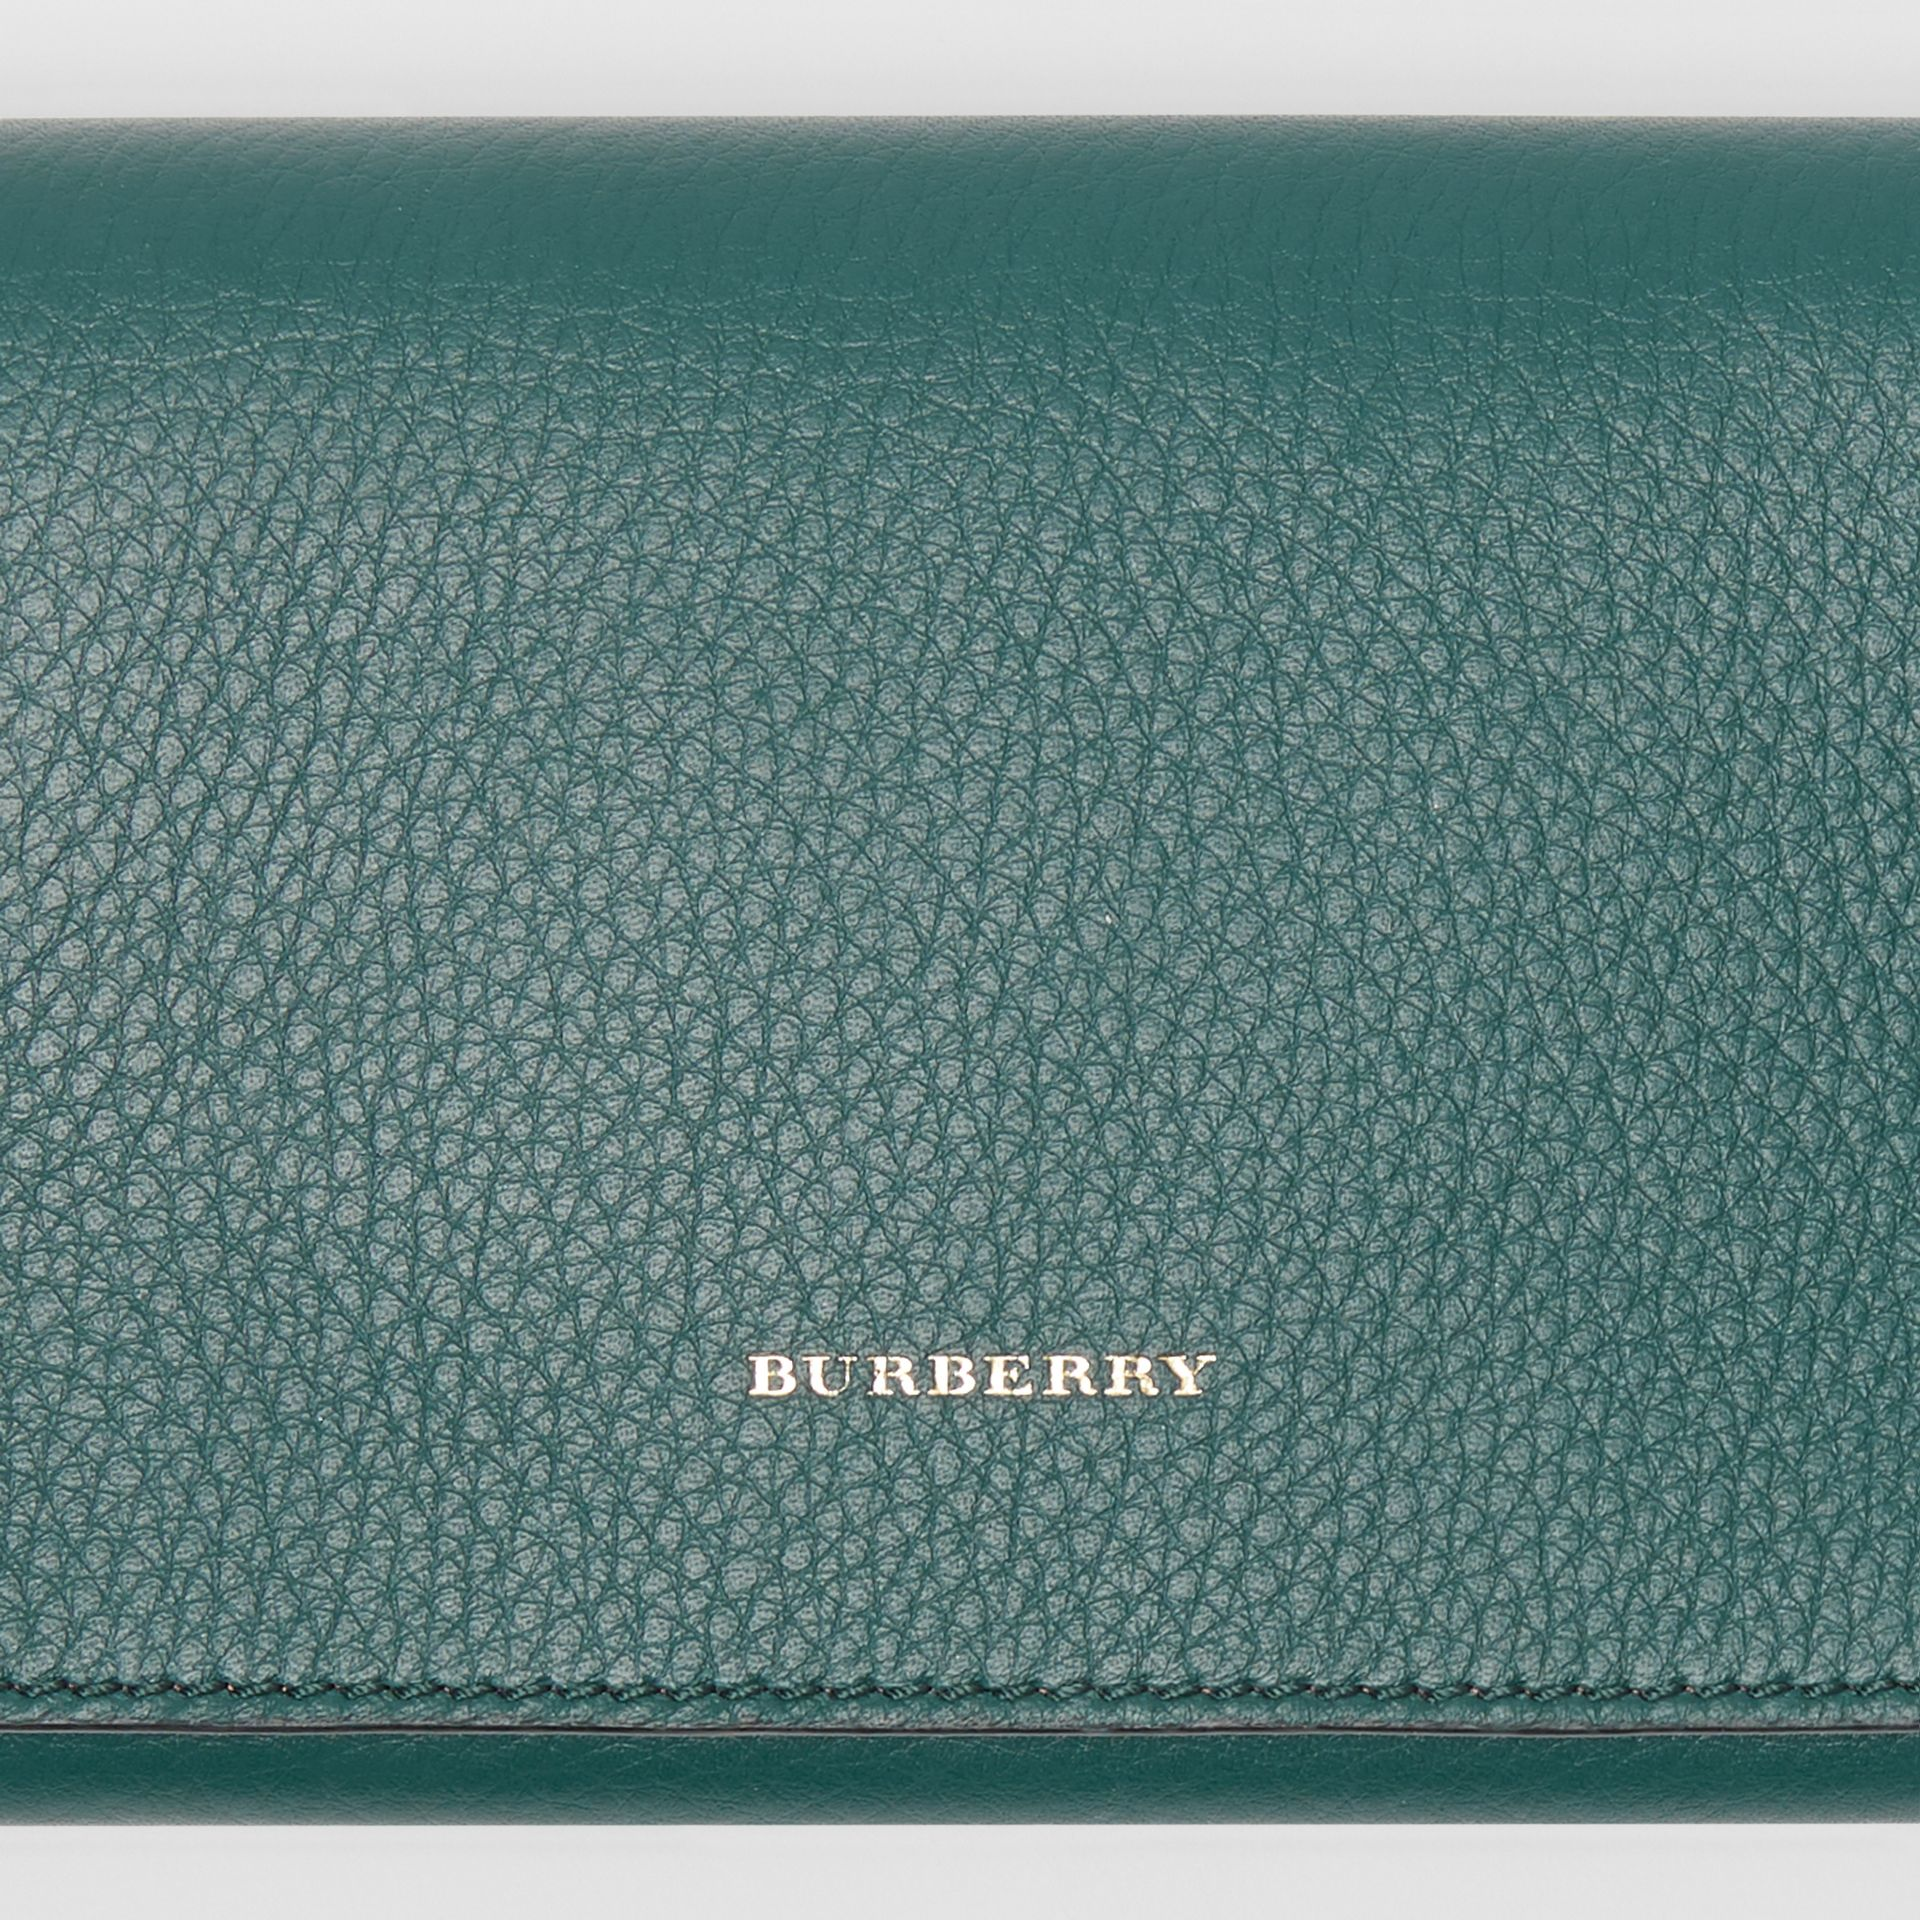 Two-tone Leather Continental Wallet in Dark Cyan - Women | Burberry United Kingdom - gallery image 1